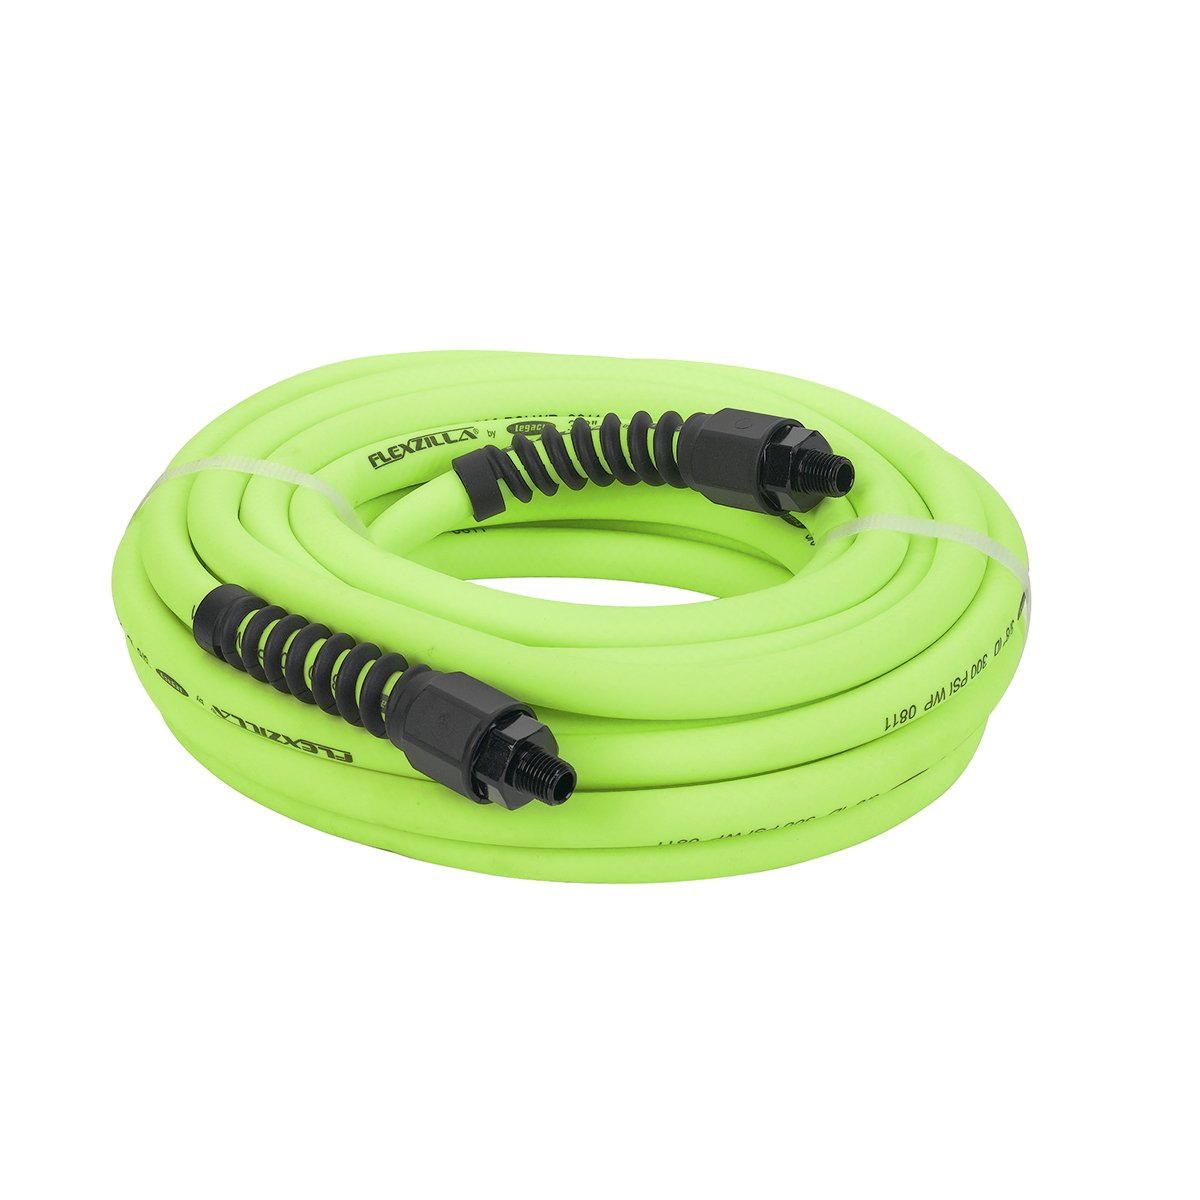 Amazon.com: Flexzilla Pro Air Hose, 3/8 In. X 35 Ft., Heavy Duty,  Lightweight, Hybrid, ZillaGreen   HFZP3835YW2: Automotive